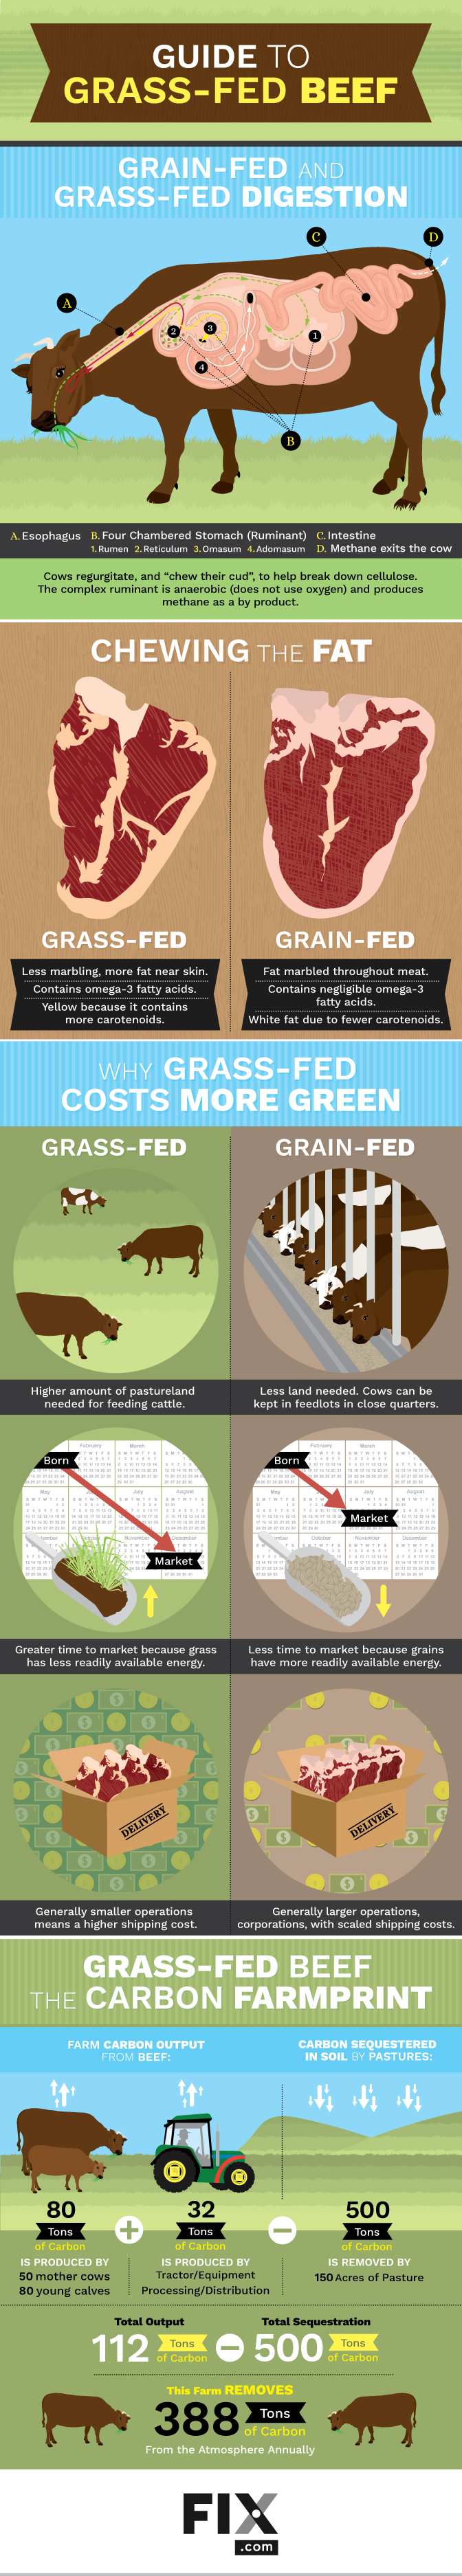 Guide to Grass-Fed Beef